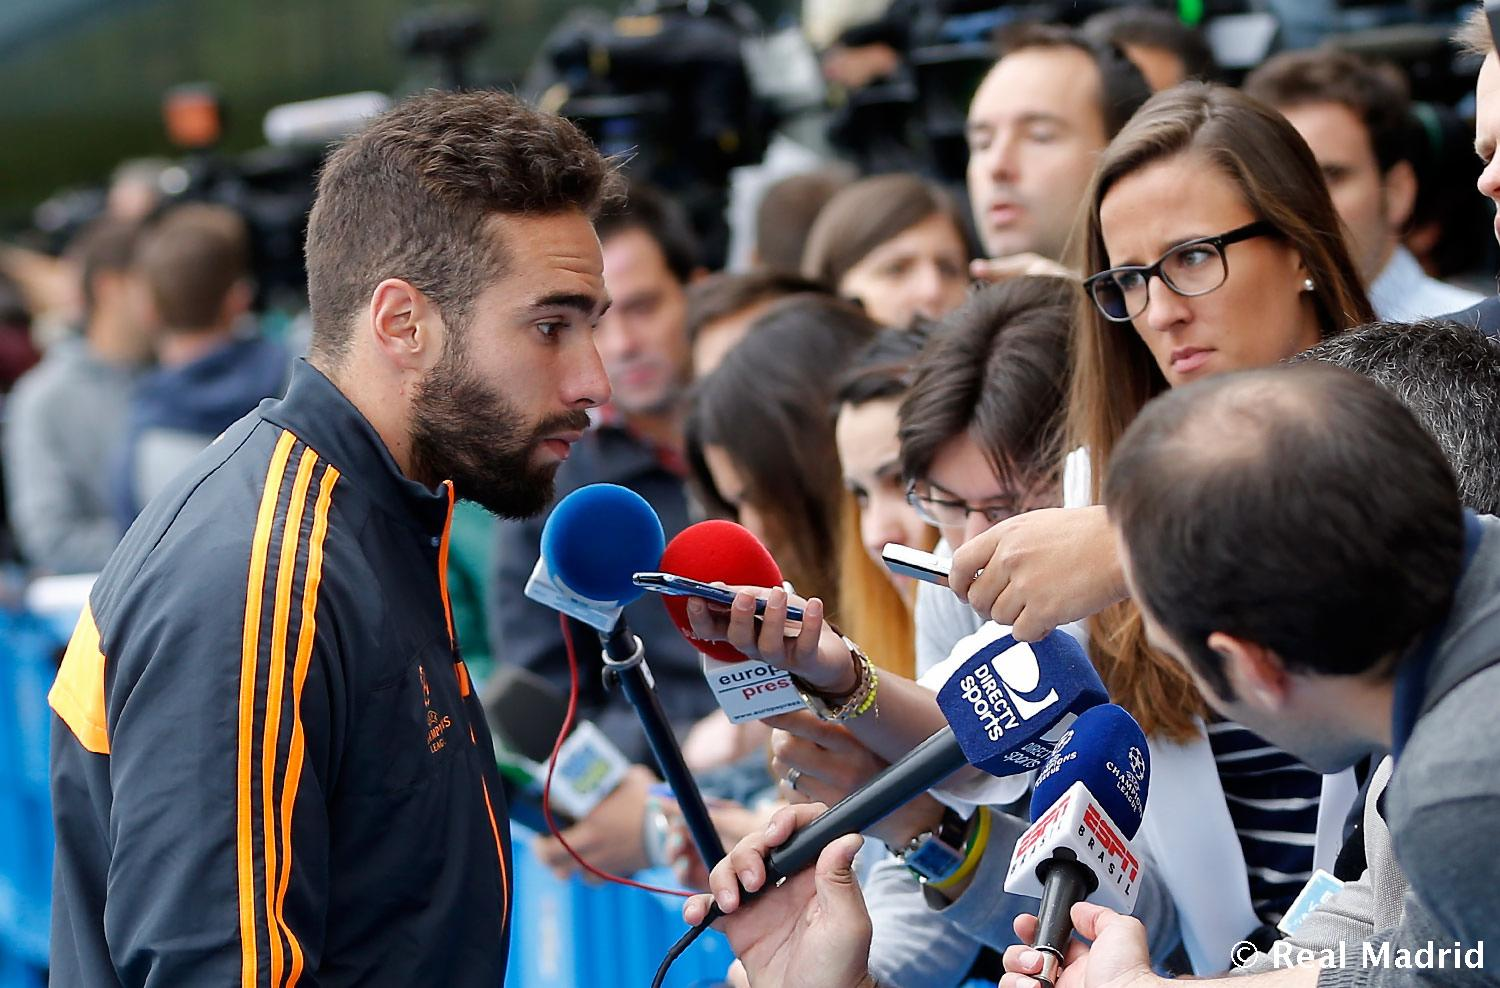 Real Madrid - Open Media Day - 20-05-2014